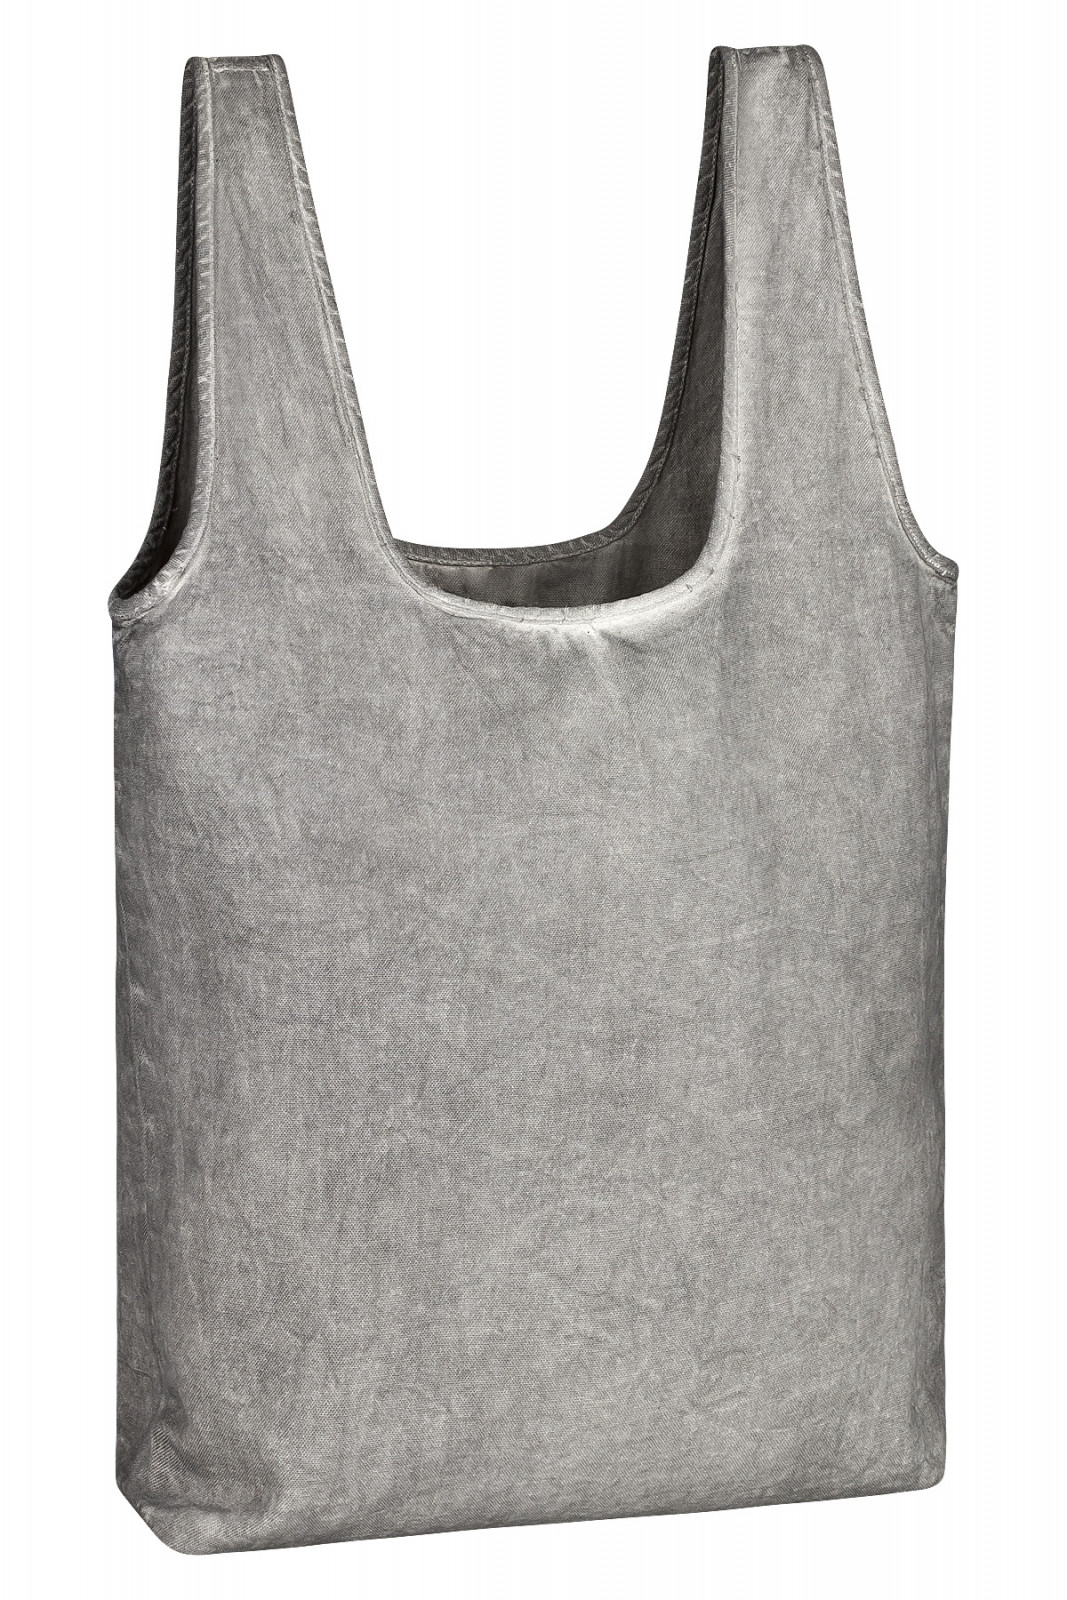 Sackly Tasche Brotbeutel